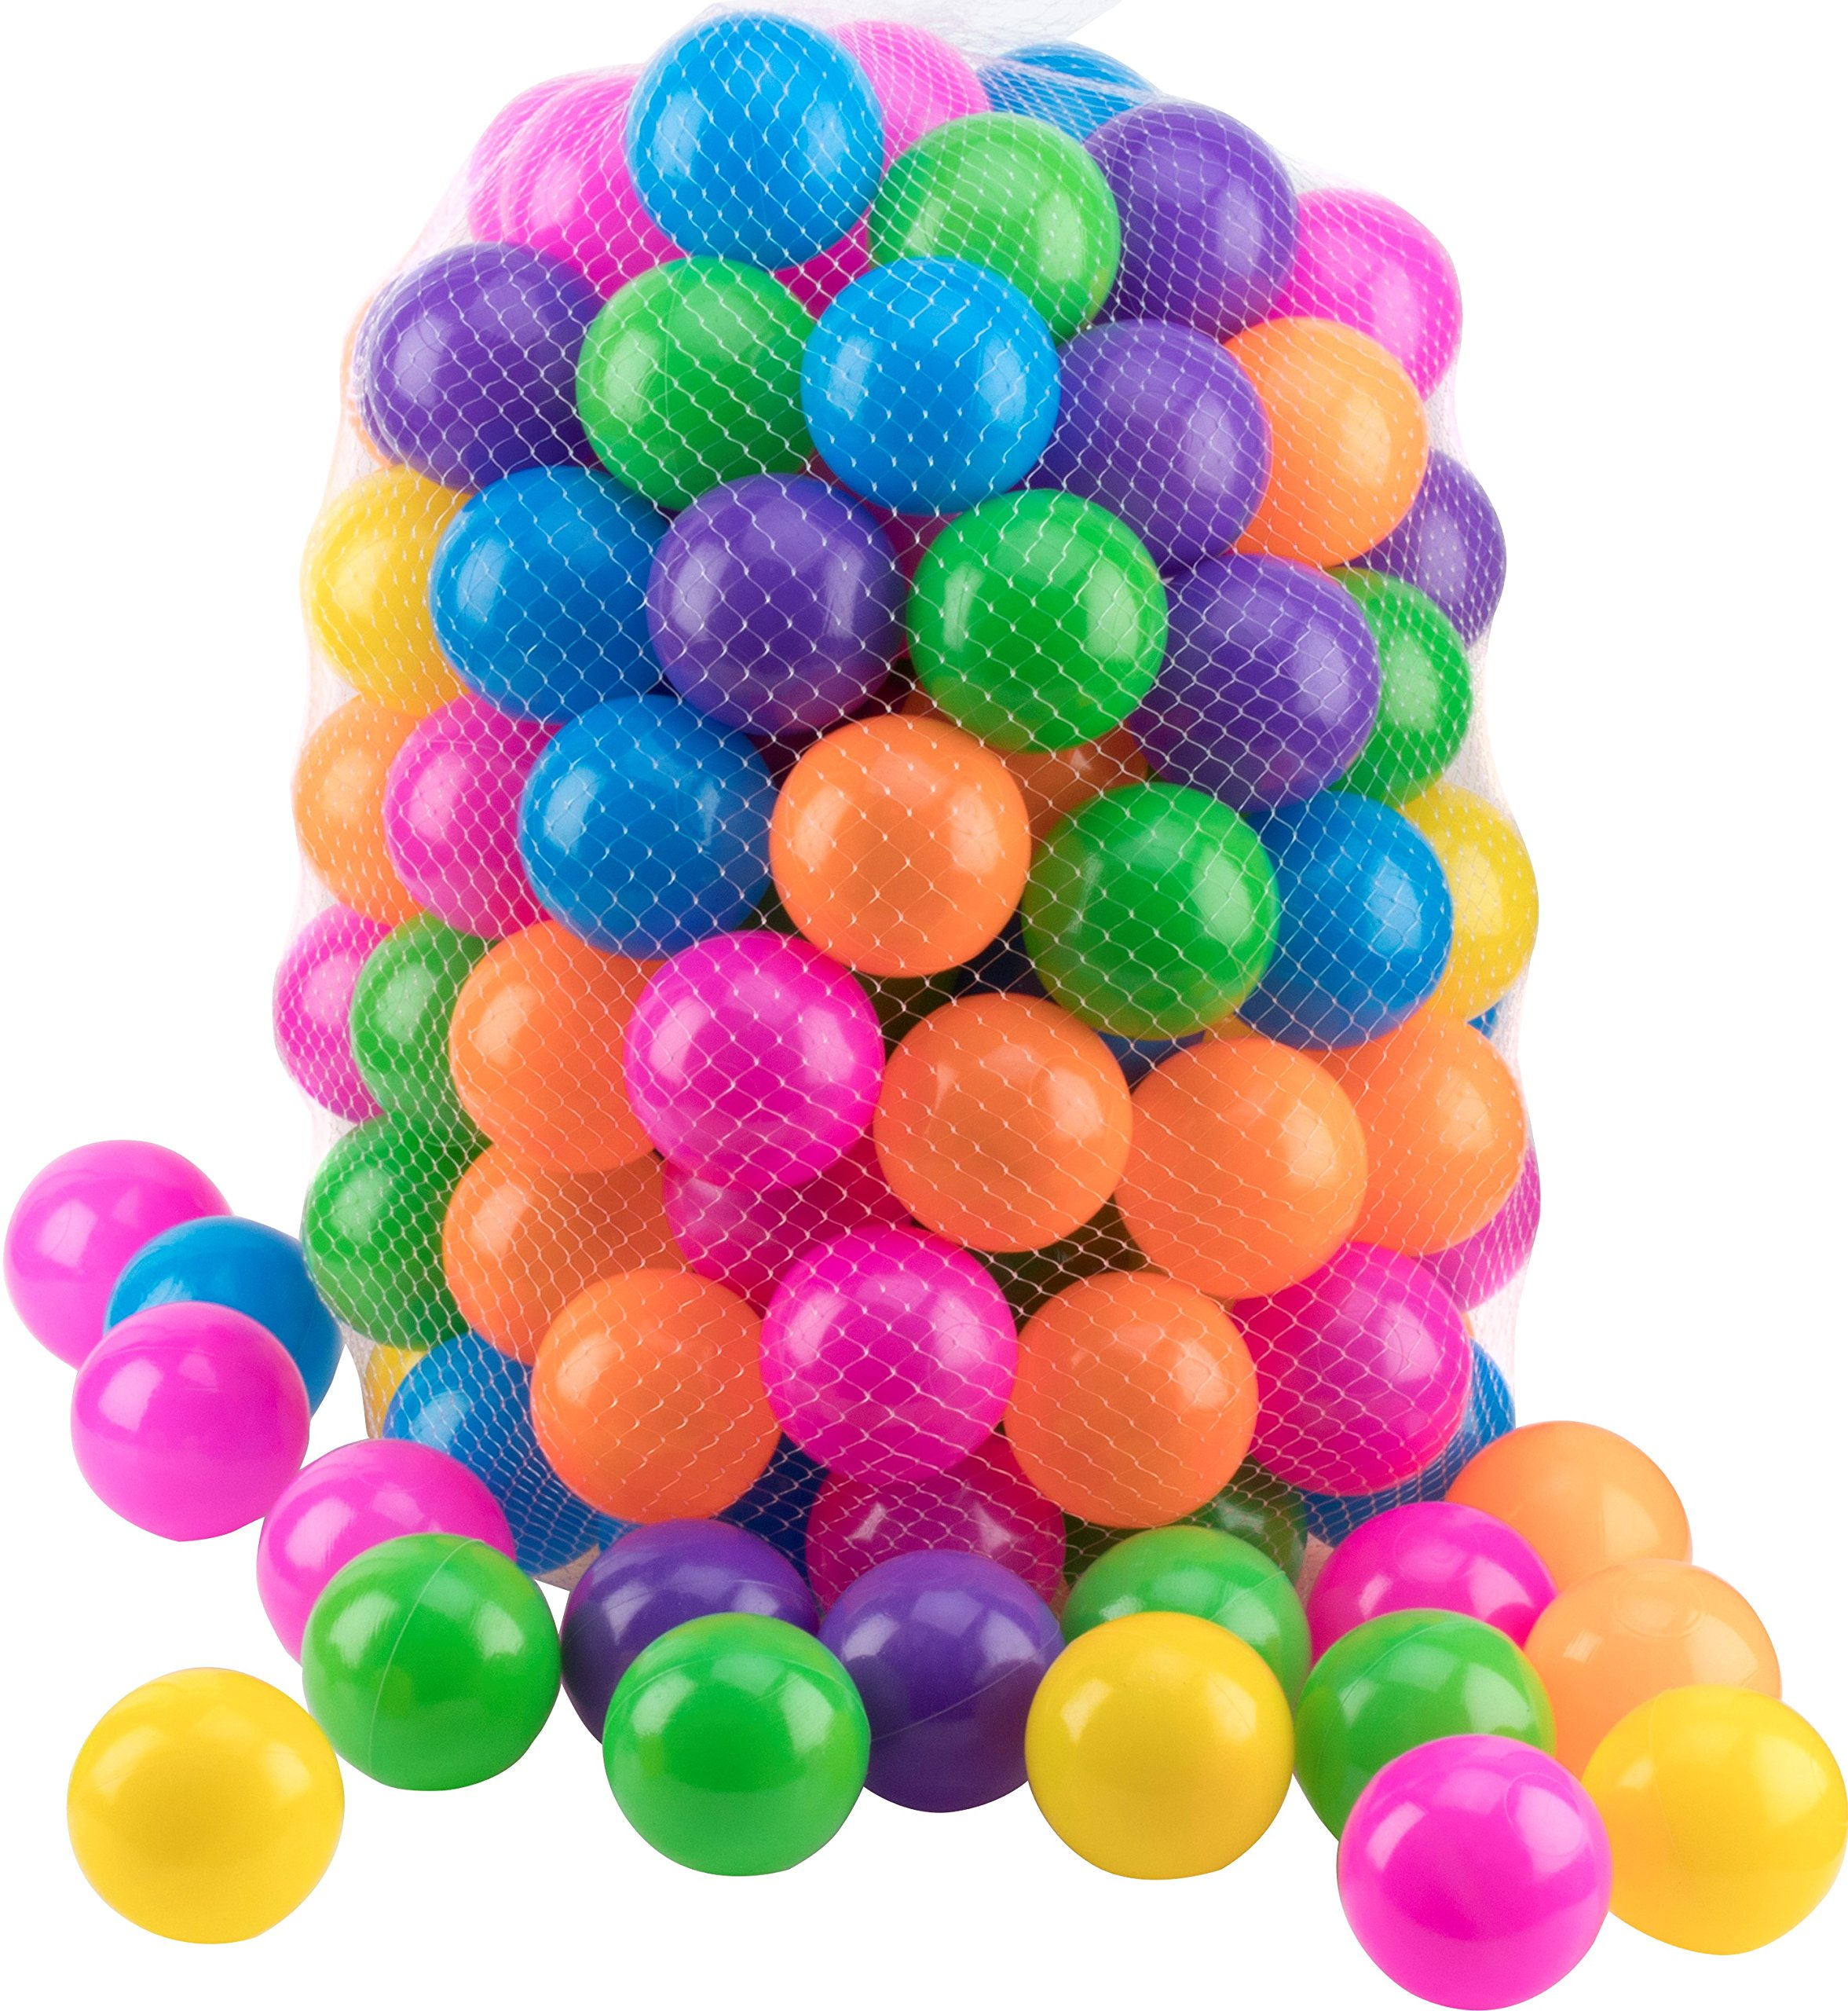 Play22 Ball Pit 200 Pack - Ball Pit Balls Crush Proof BPA Free - Includes Reusable Zipper Mesh Bag - Colorful Fun Plastic Balls - Ball Pit for Kids and Baby - Ball Pit for Any Ball Pool - Original